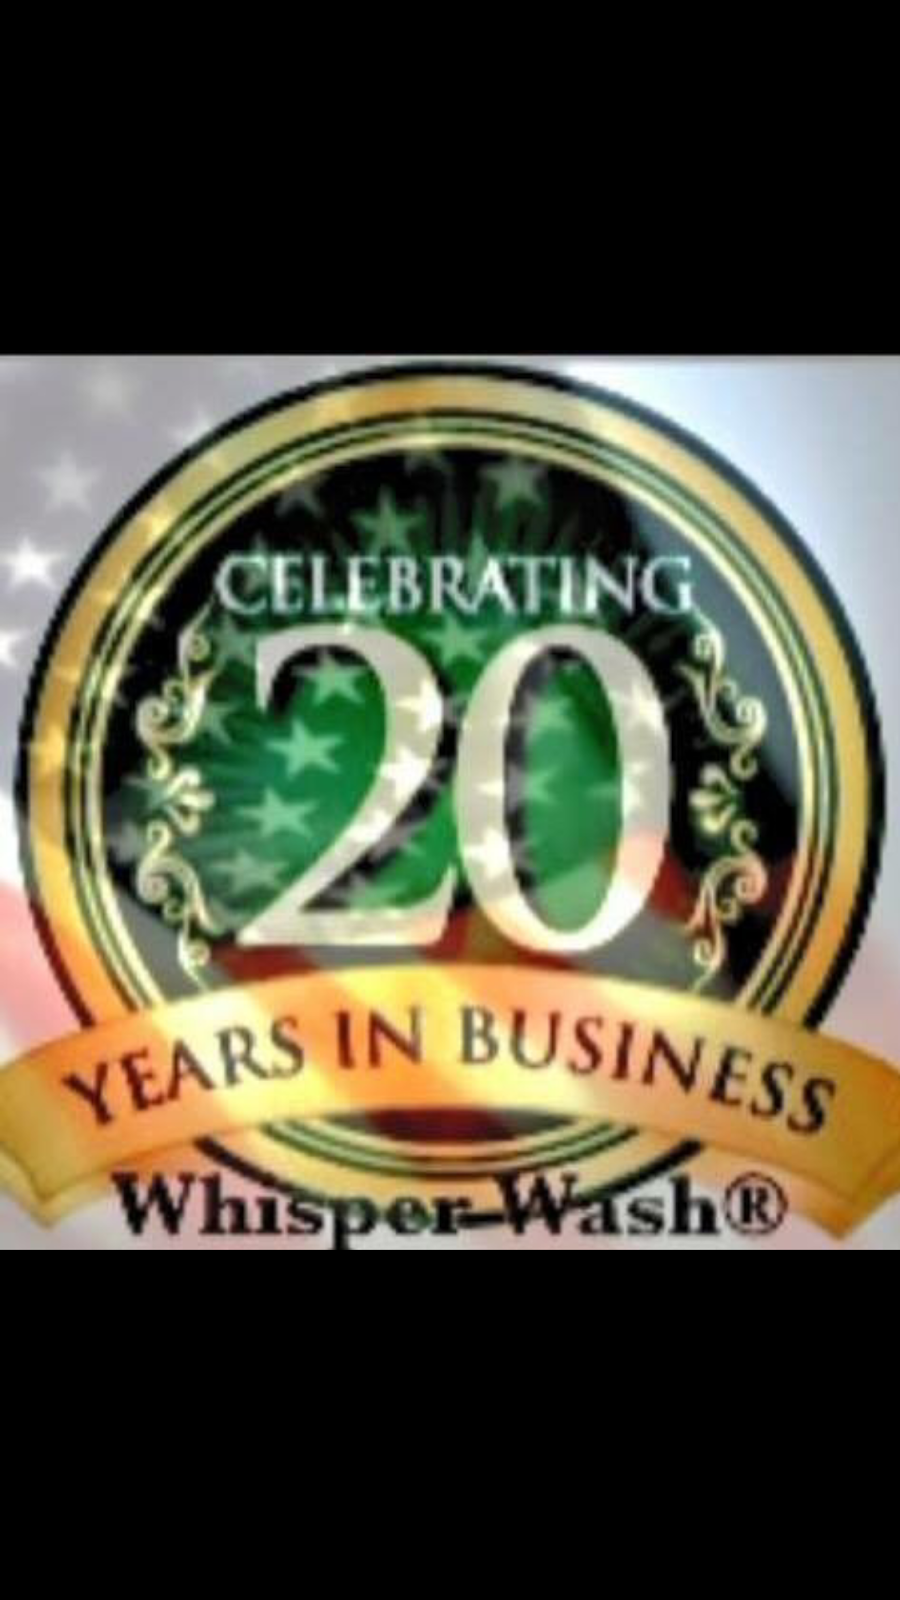 Whisper Wash Inc - storage  | Photo 5 of 9 | Address: 3000 Gandy Blvd, St. Petersburg, FL 33702, USA | Phone: (727) 577-1292